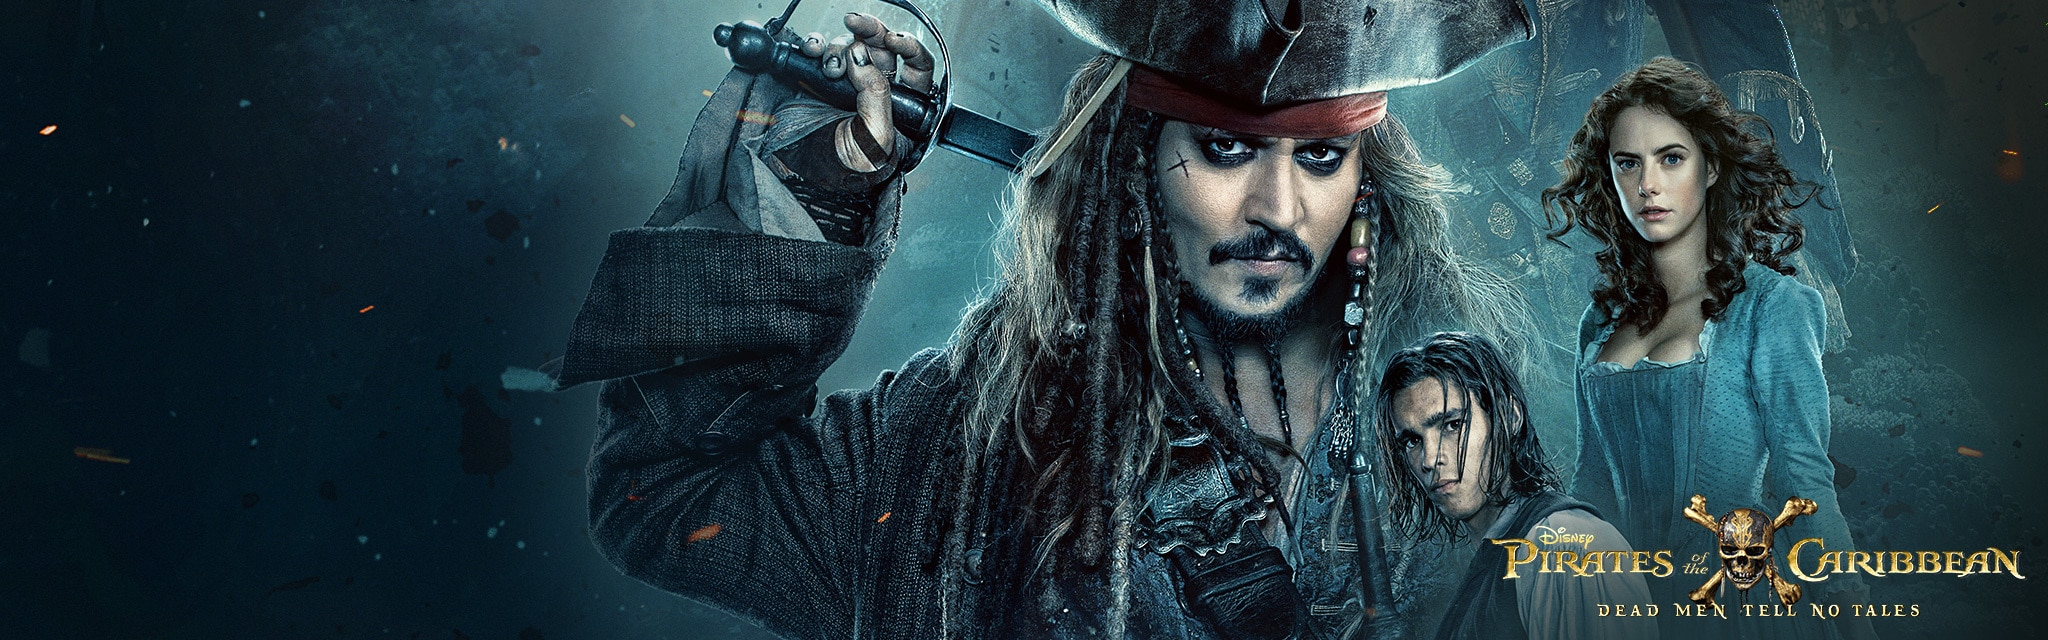 Pirates of the Caribbean 5 - Tickets - Hero